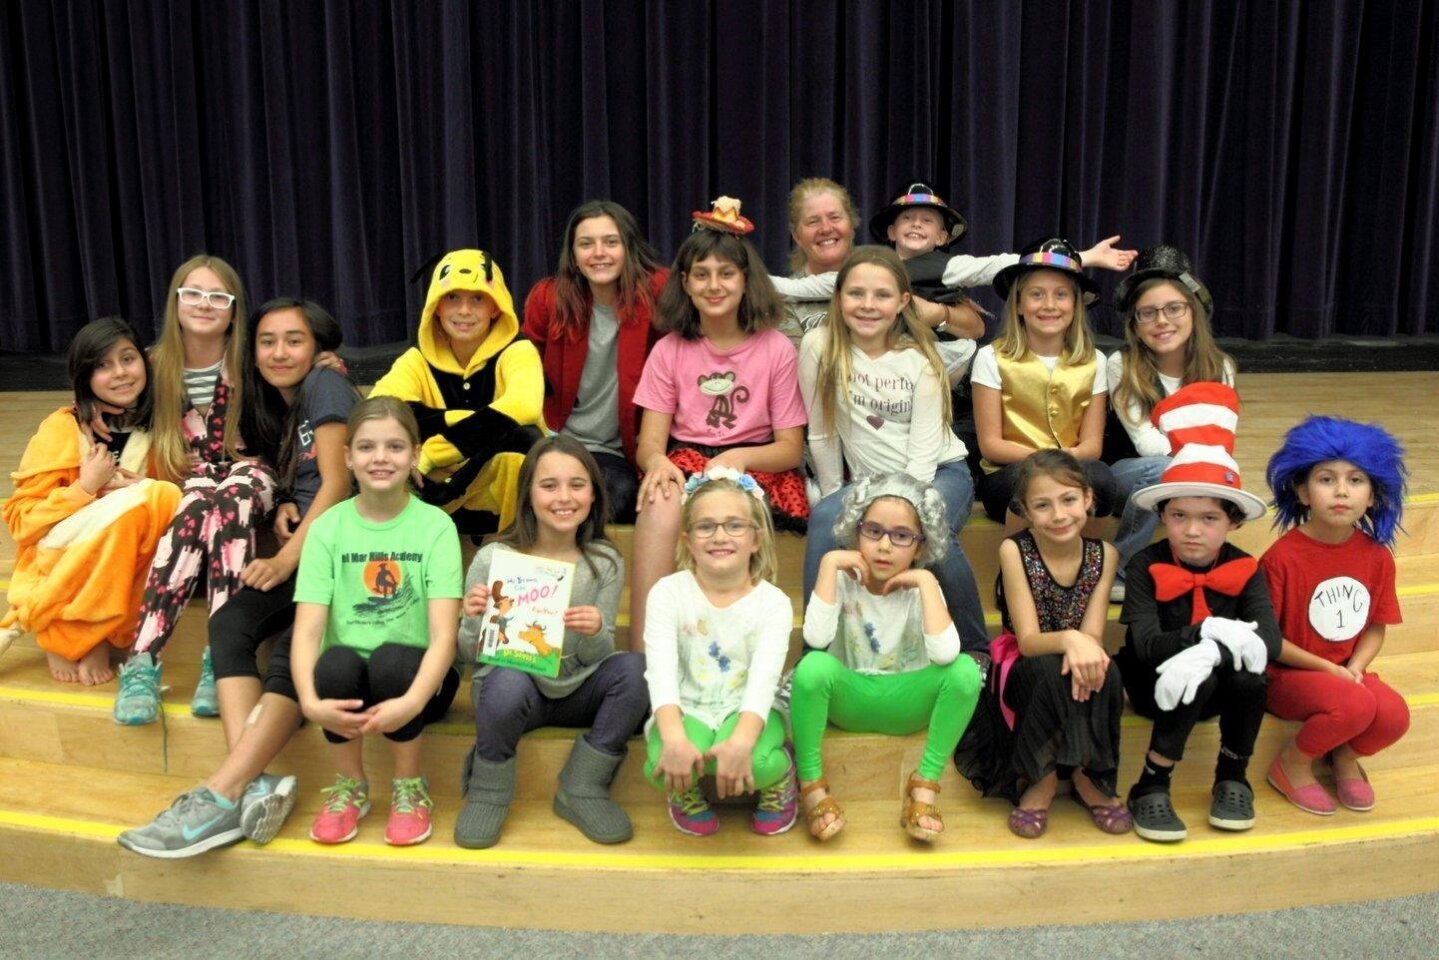 Students at Del Mar Hills Academy celebrate the magical work of Dr. Seuss